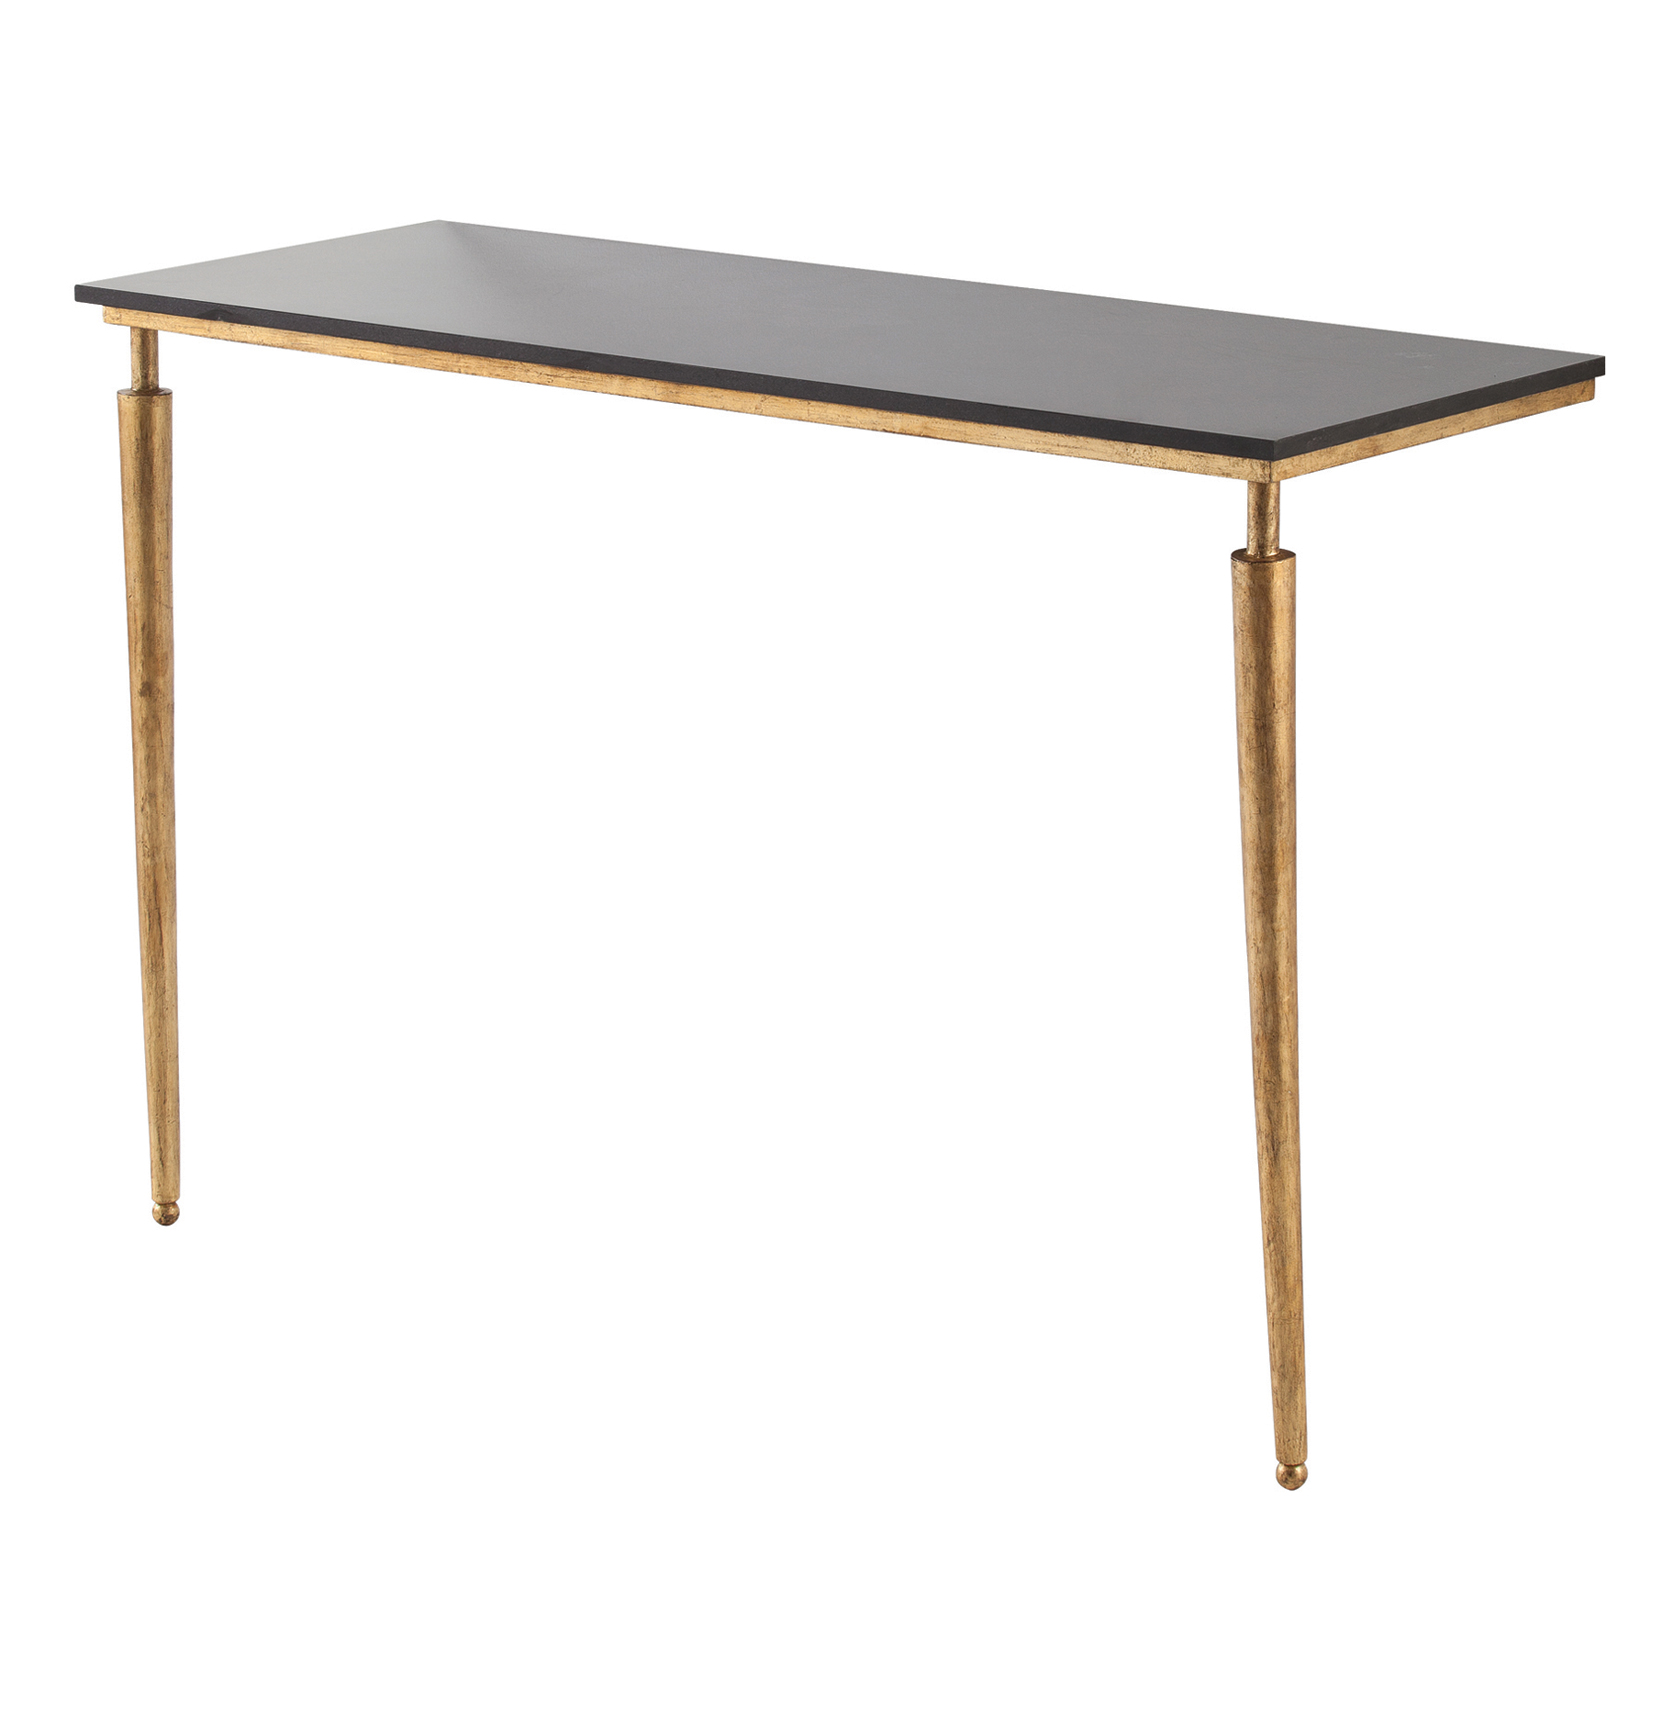 Bailey Polished Black Marble Gold Leaf Console Table